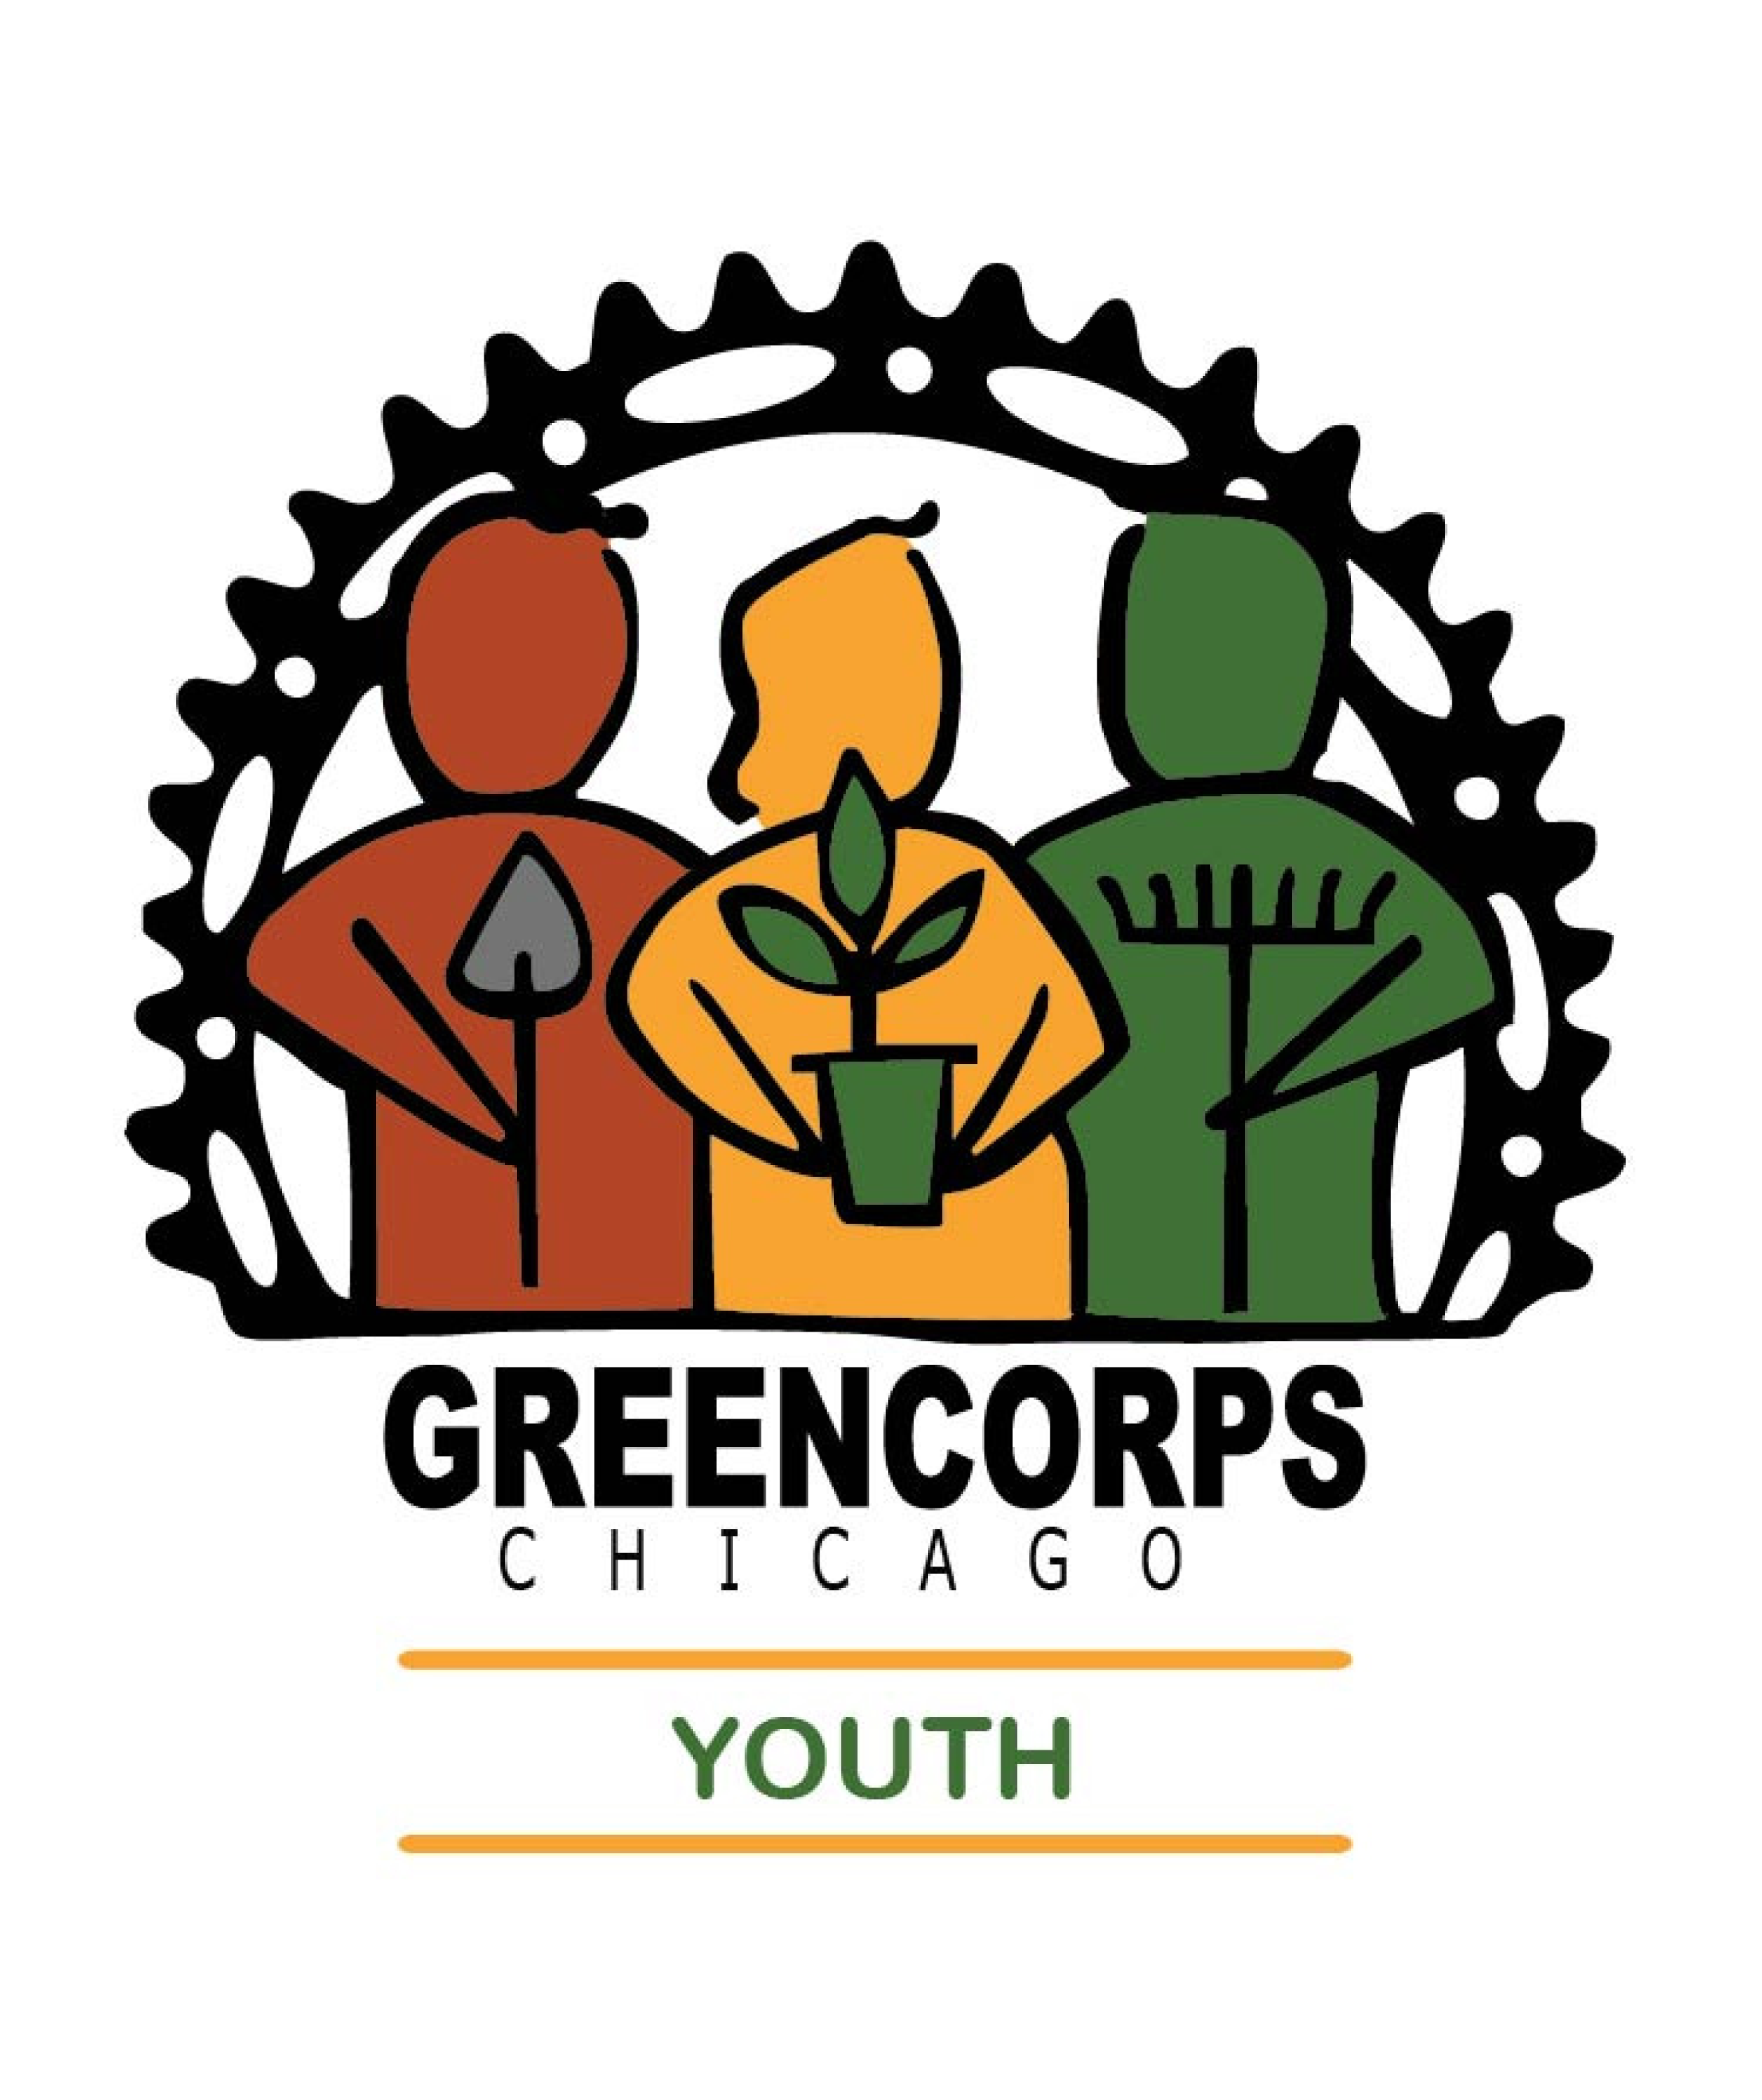 http://greencorpschicago.org